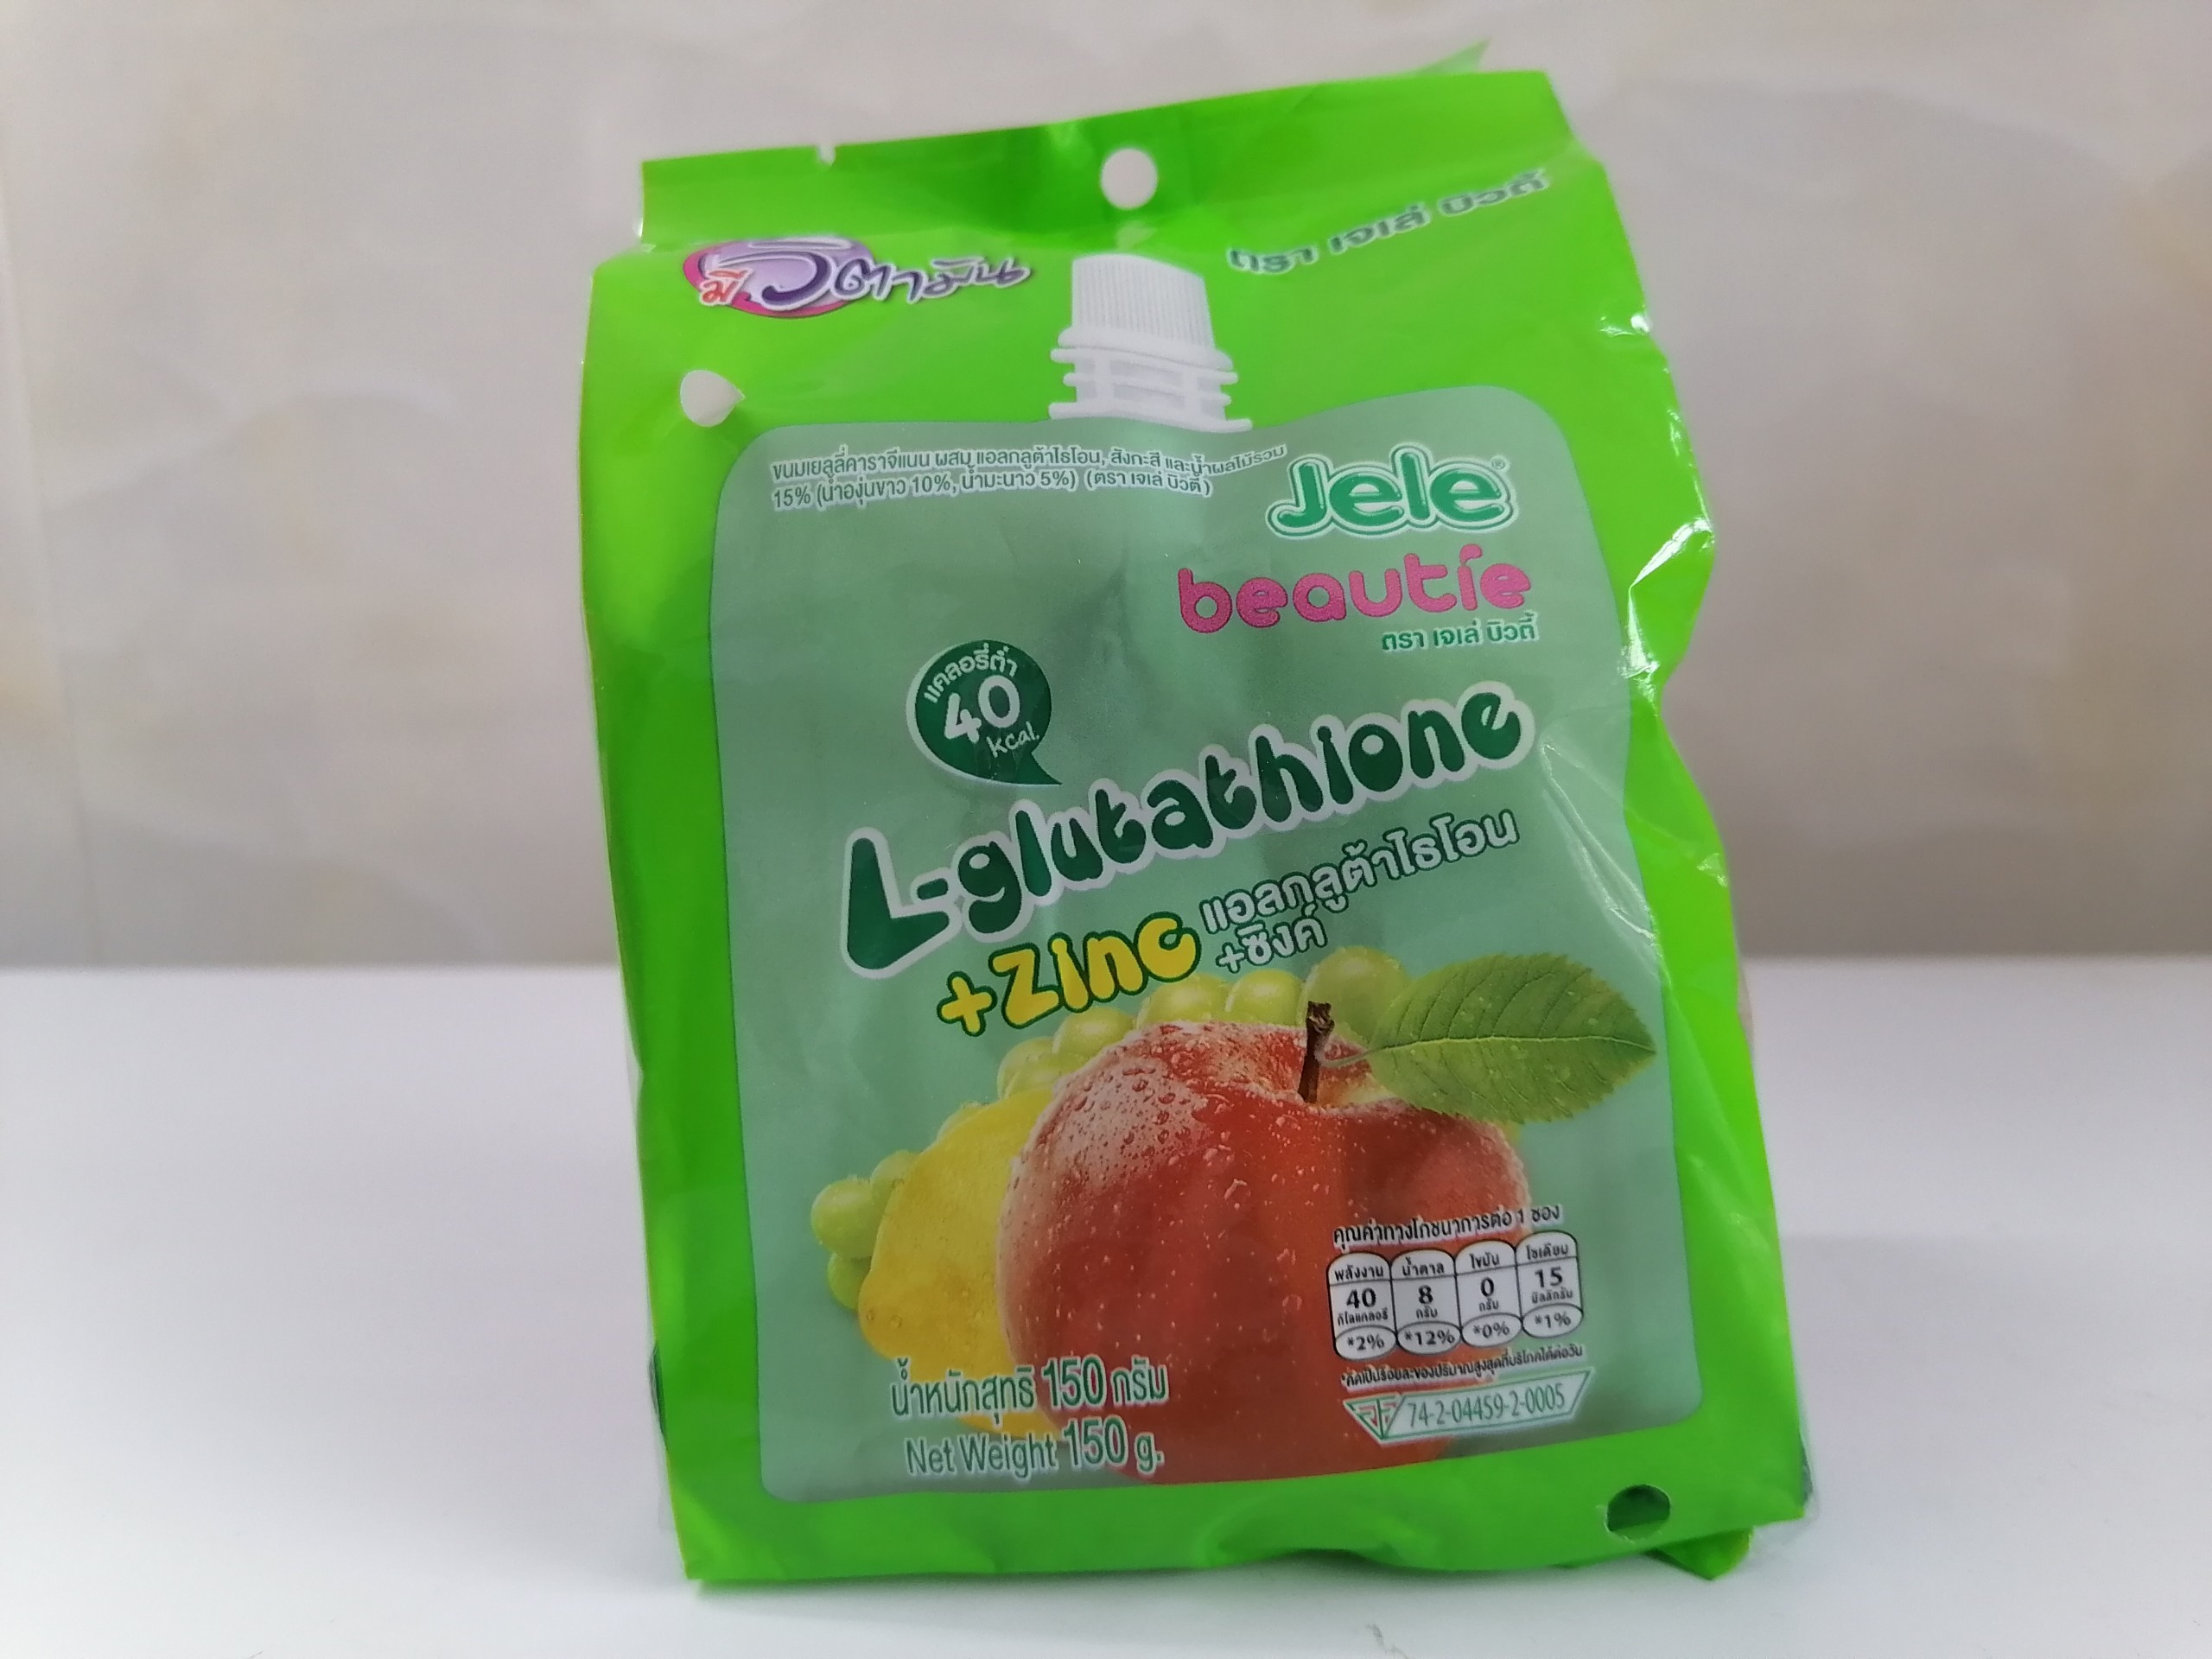 Nước ép trái cây thạch L-Glutathione JEJE BEAUTIE BRAND Jelly Carageenan with L-Glutathione, Zinc and 15% Mixed Fruit Juice 150g x3 (halal)